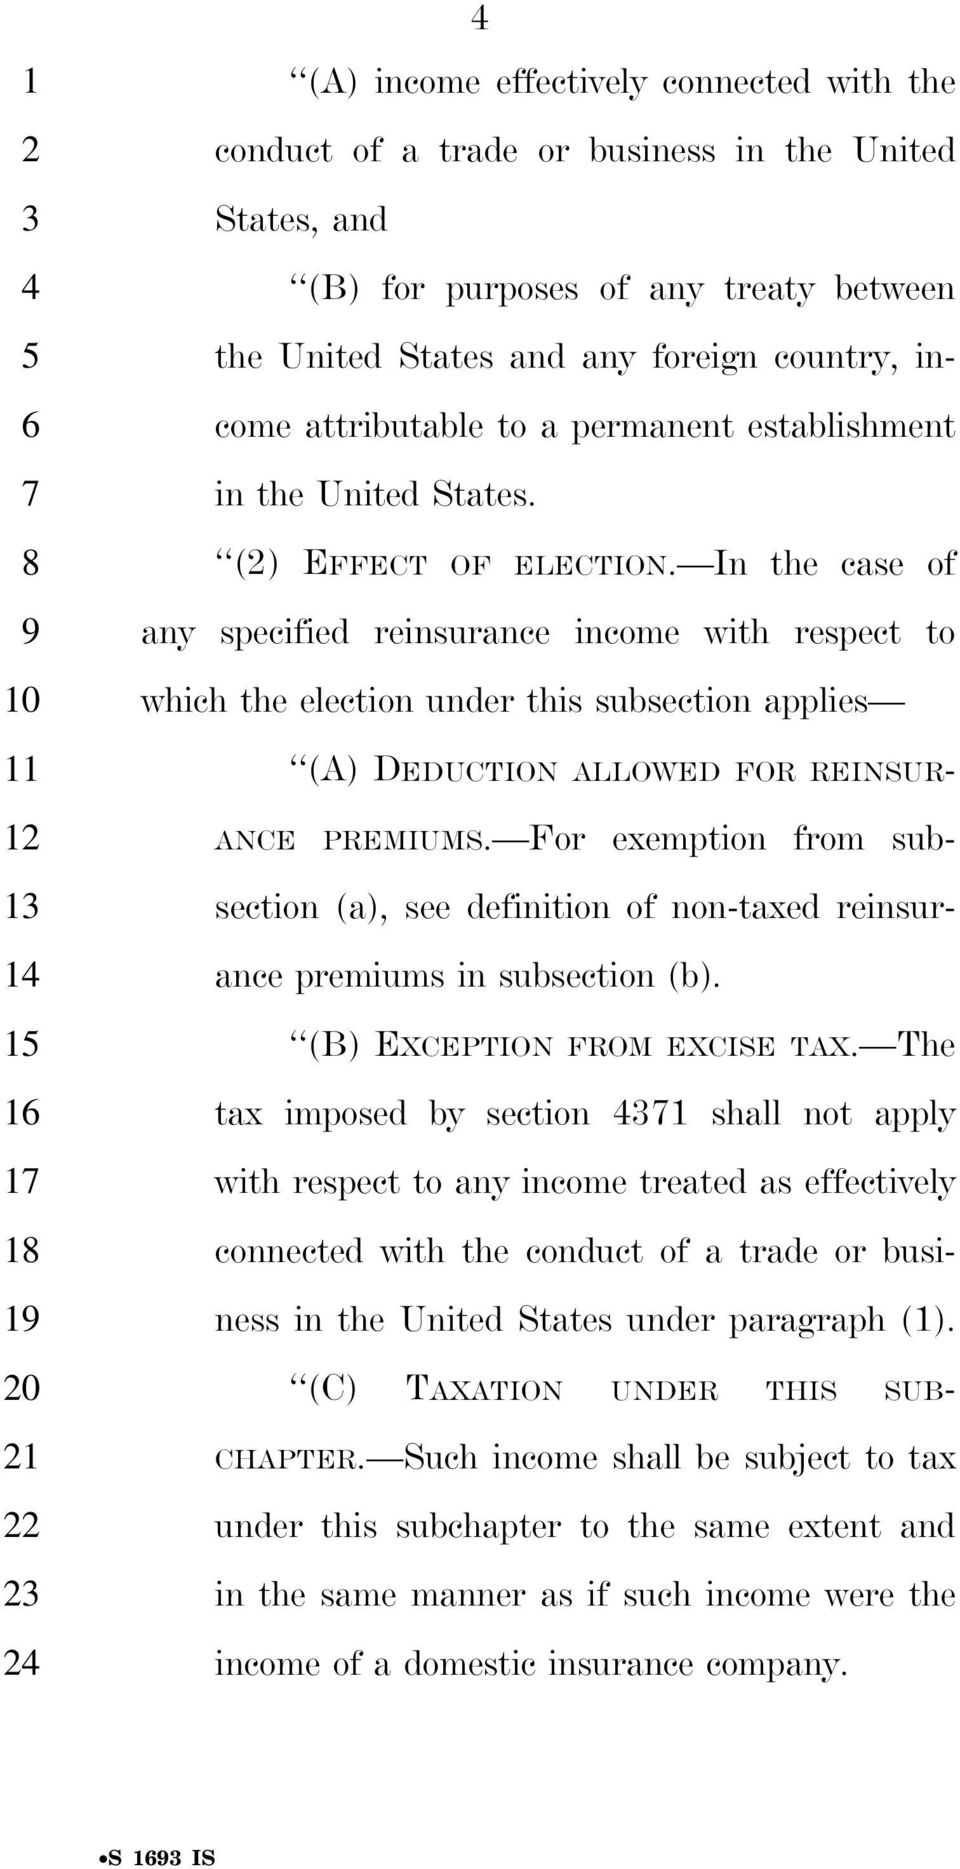 In the case of 9 any specified reinsurance income with respect to 0 which the election under this subsection applies 8 9 0 ANCE (A) DEDUCTION ALLOWED FOR REINSUR- PREMIUMS.